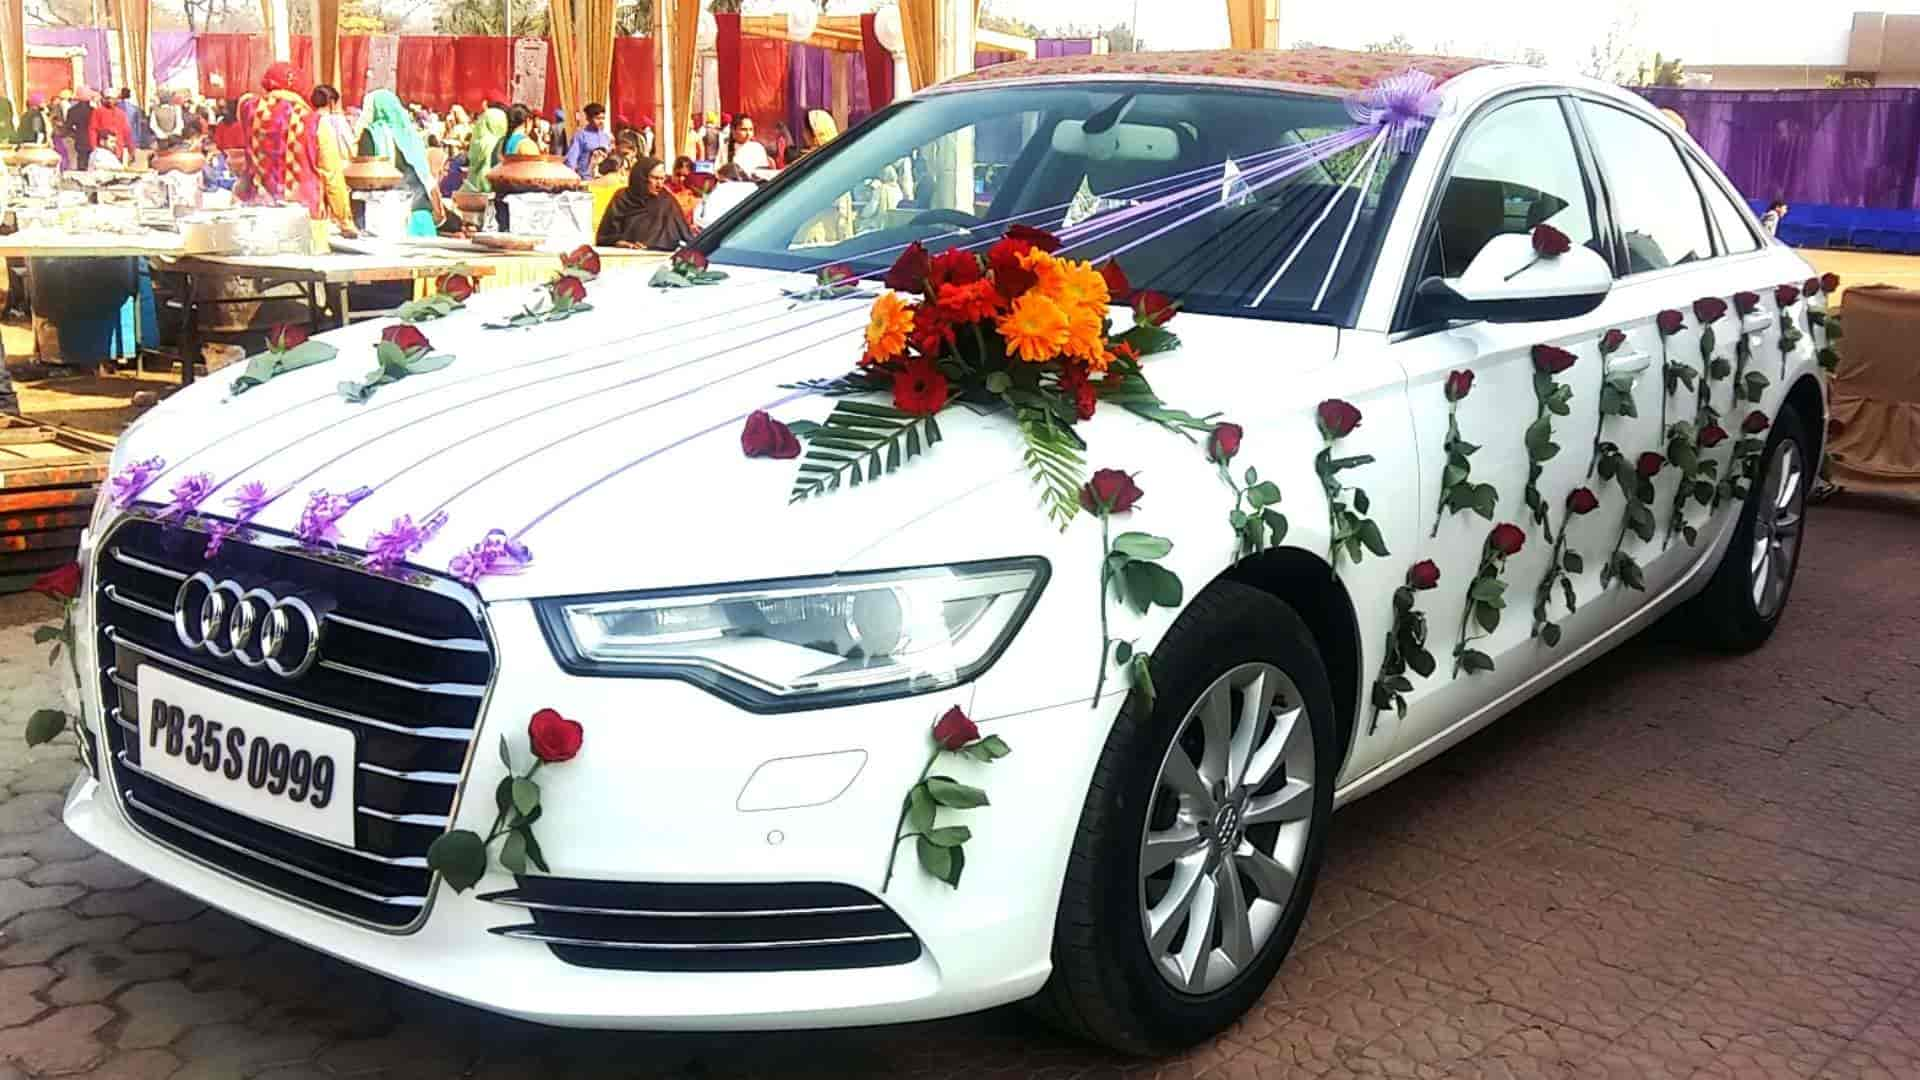 Aone Luxury Cars Photos Ayali Kalan Ludhiana Pictures Images - Audi car decoration